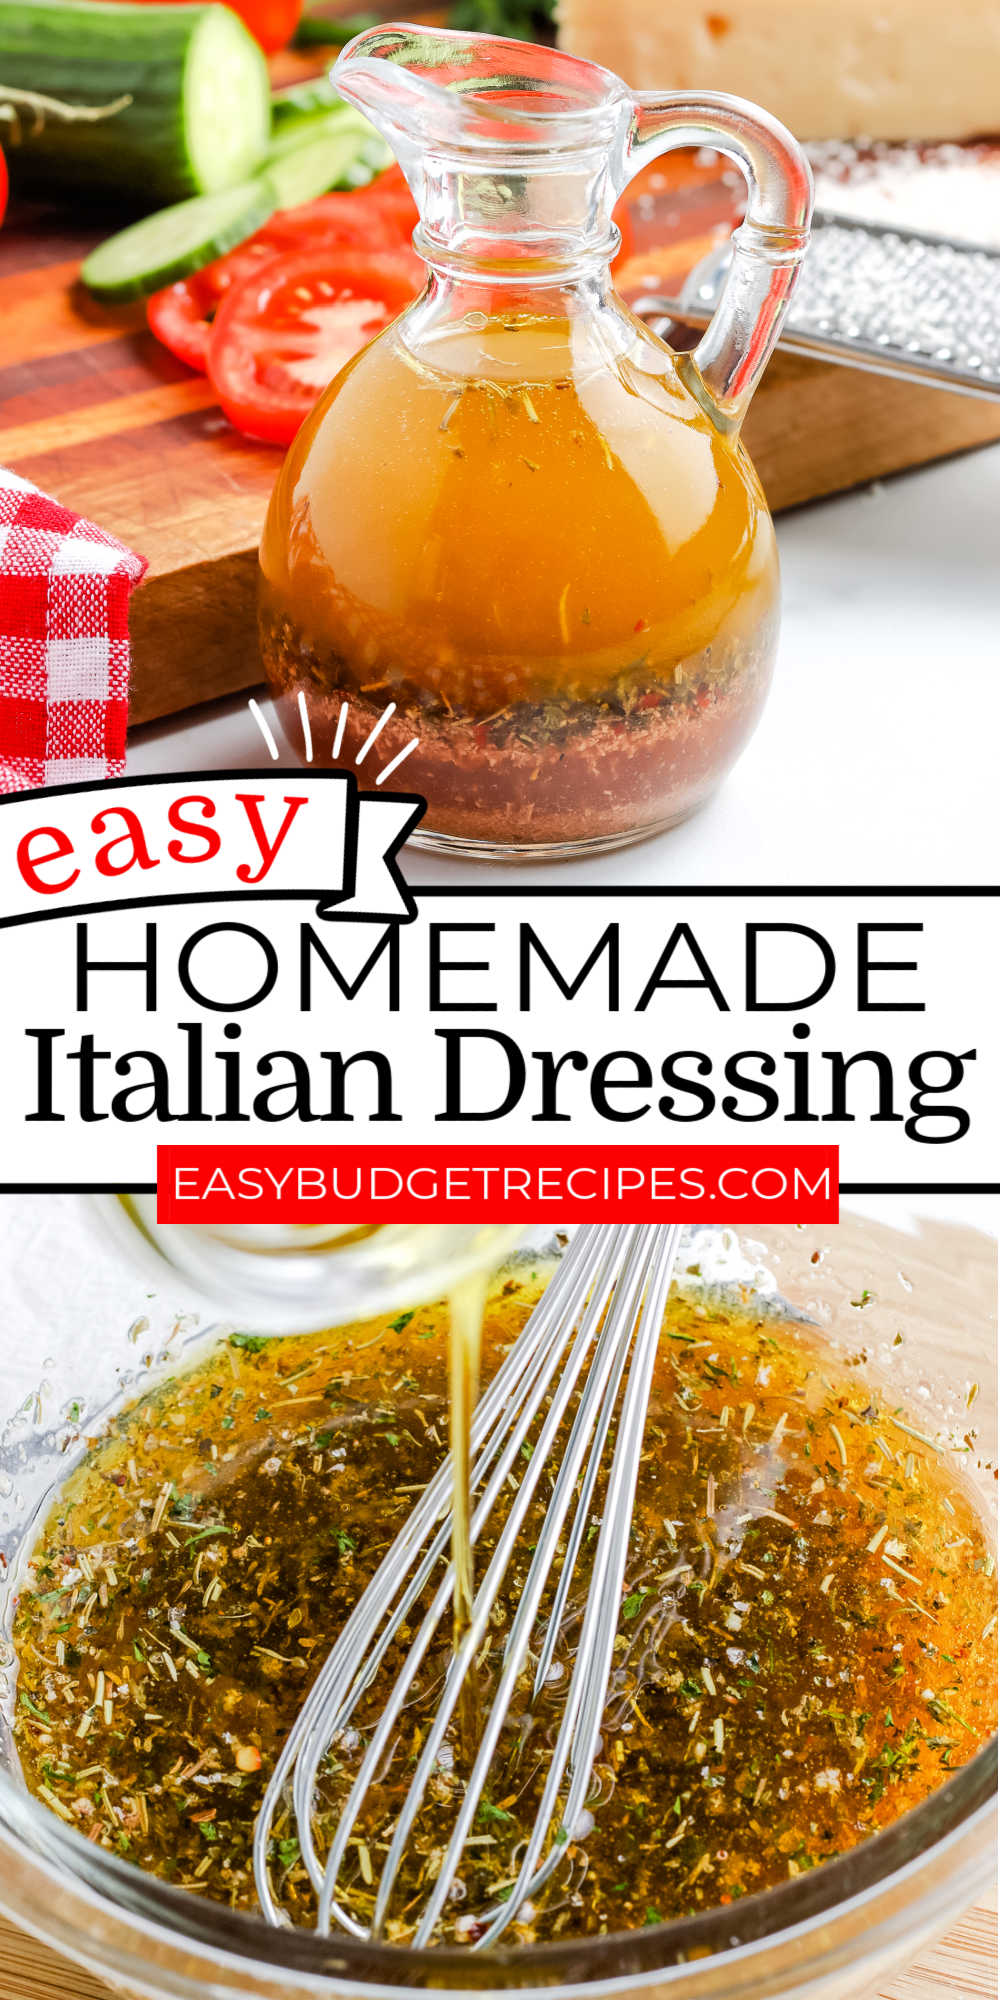 This easy Homemade Zesty Italian Dressing recipe is packed with seasonings and so much flavor. You'll never go back to bottled dressing again! via @easybudgetrecipes